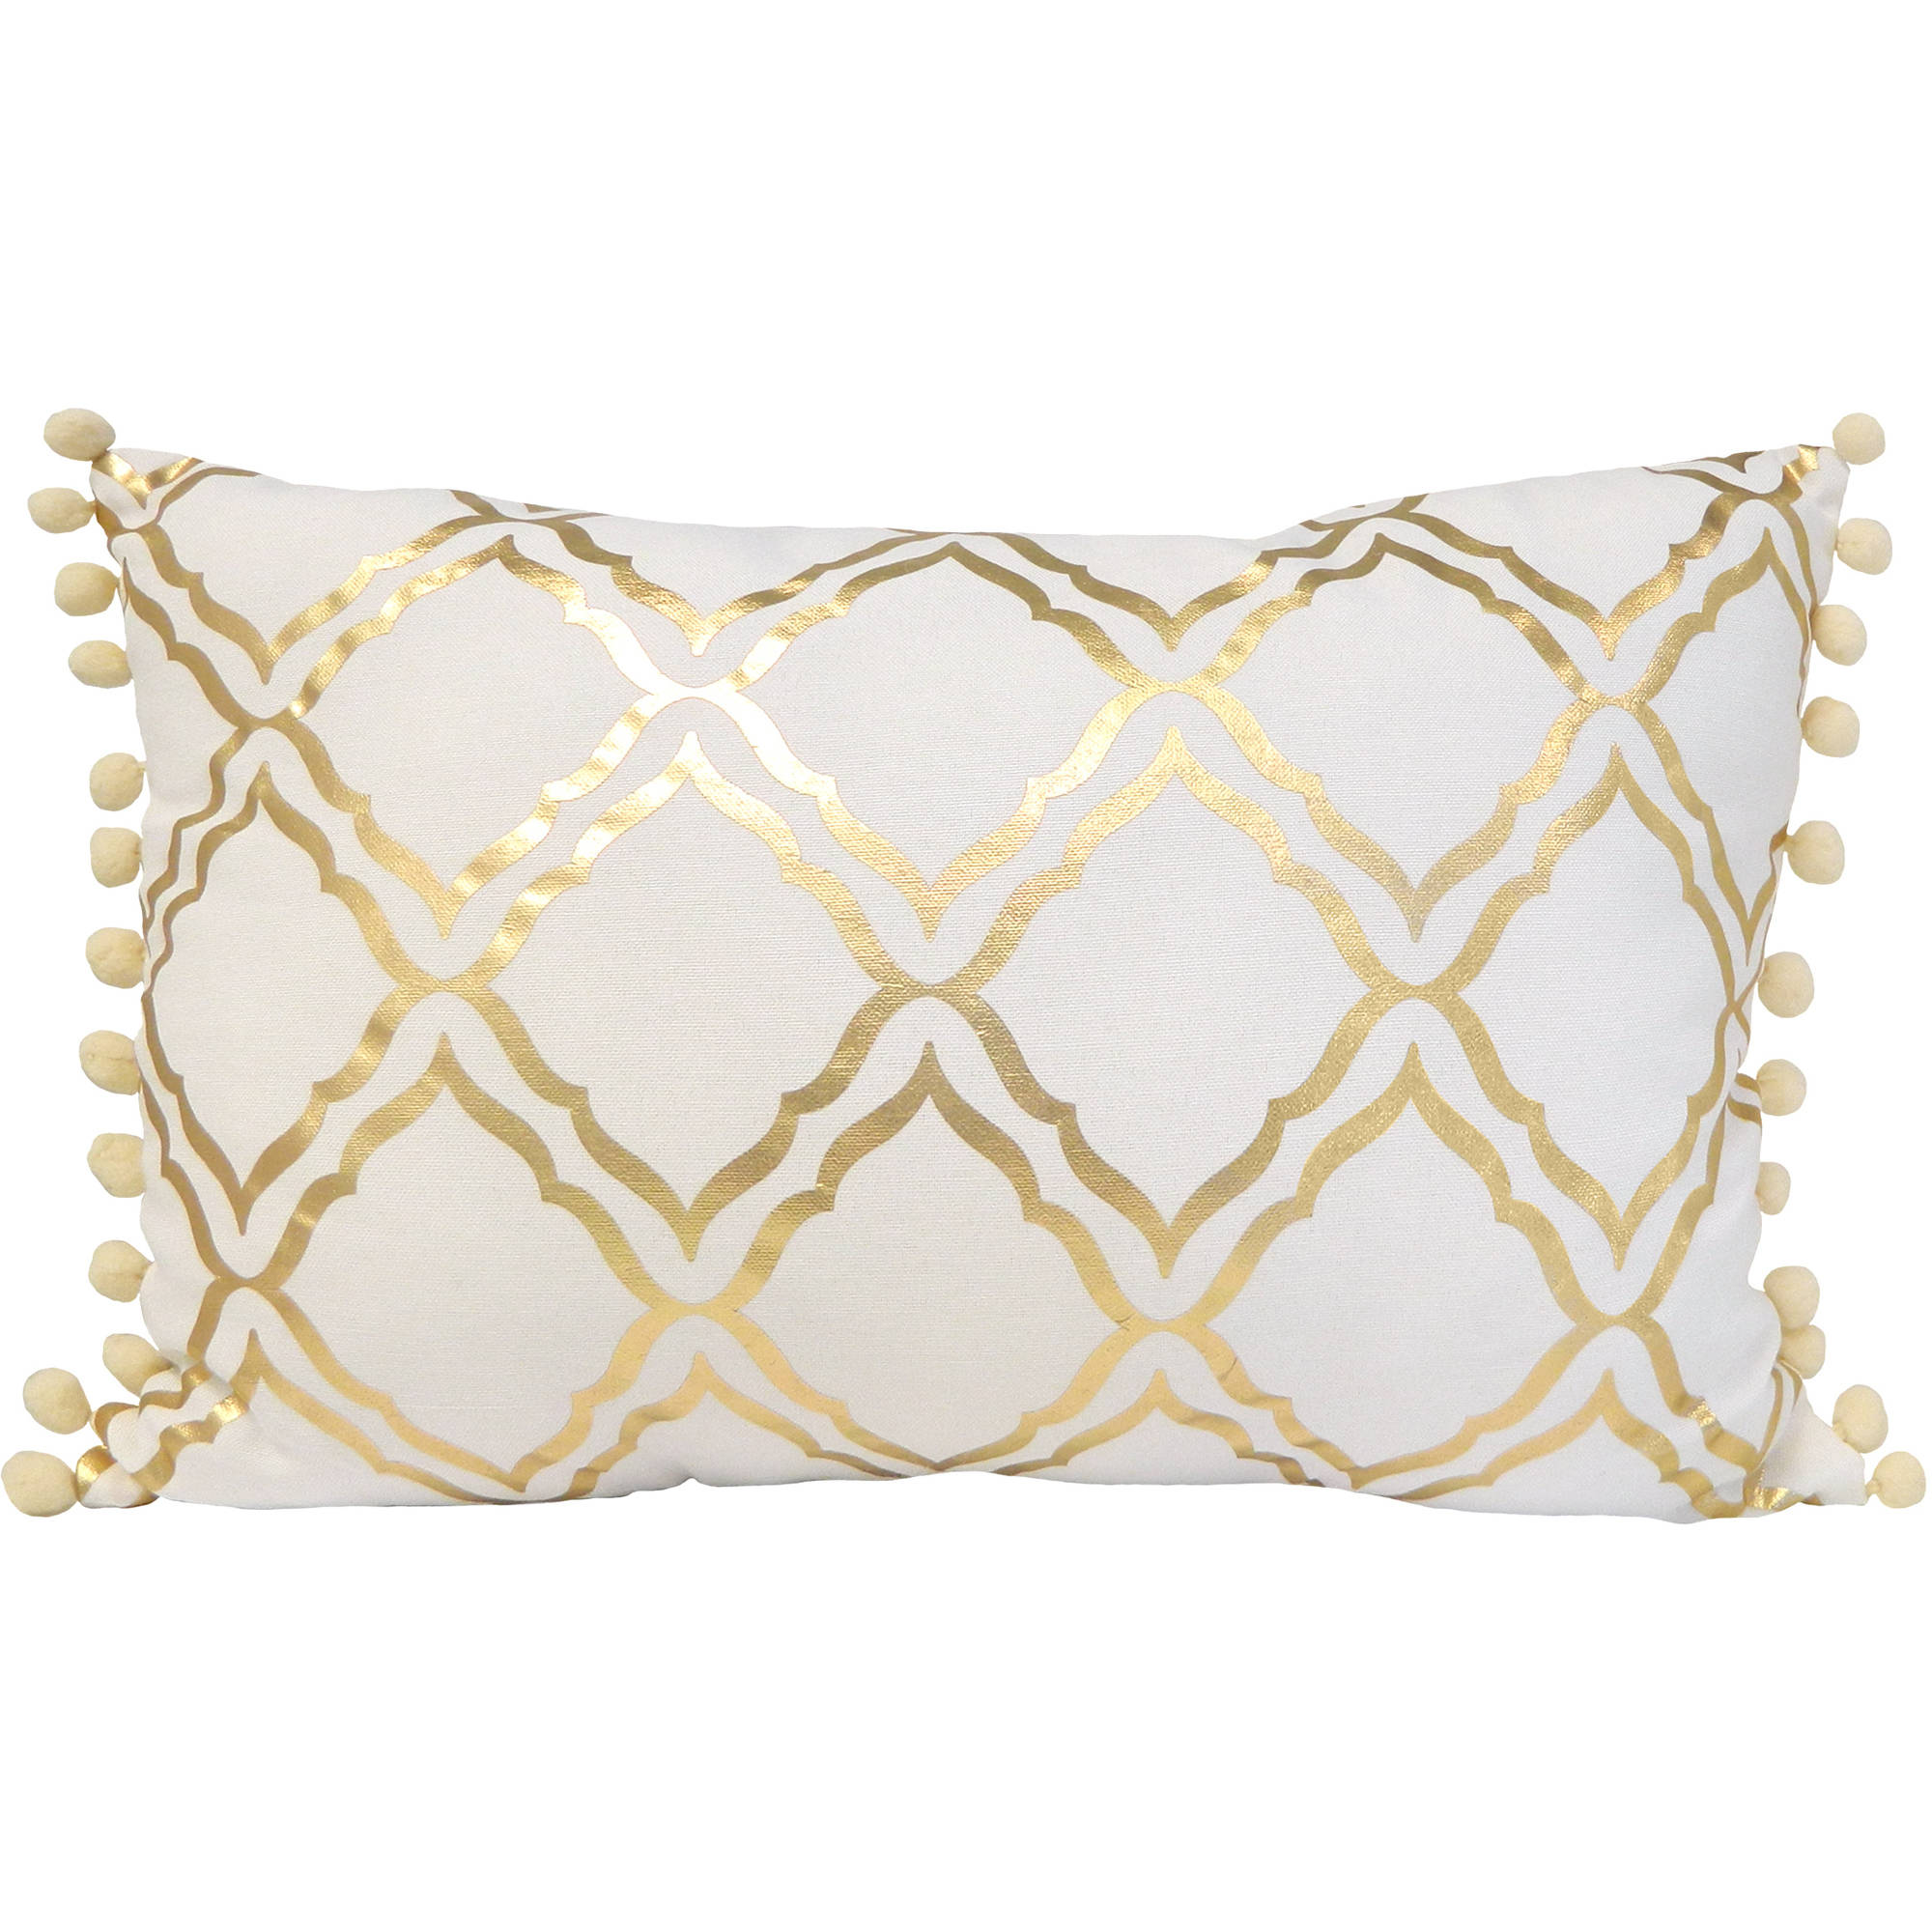 Better Homes and Gardens Trellis Foil Pillow with Pom Poms